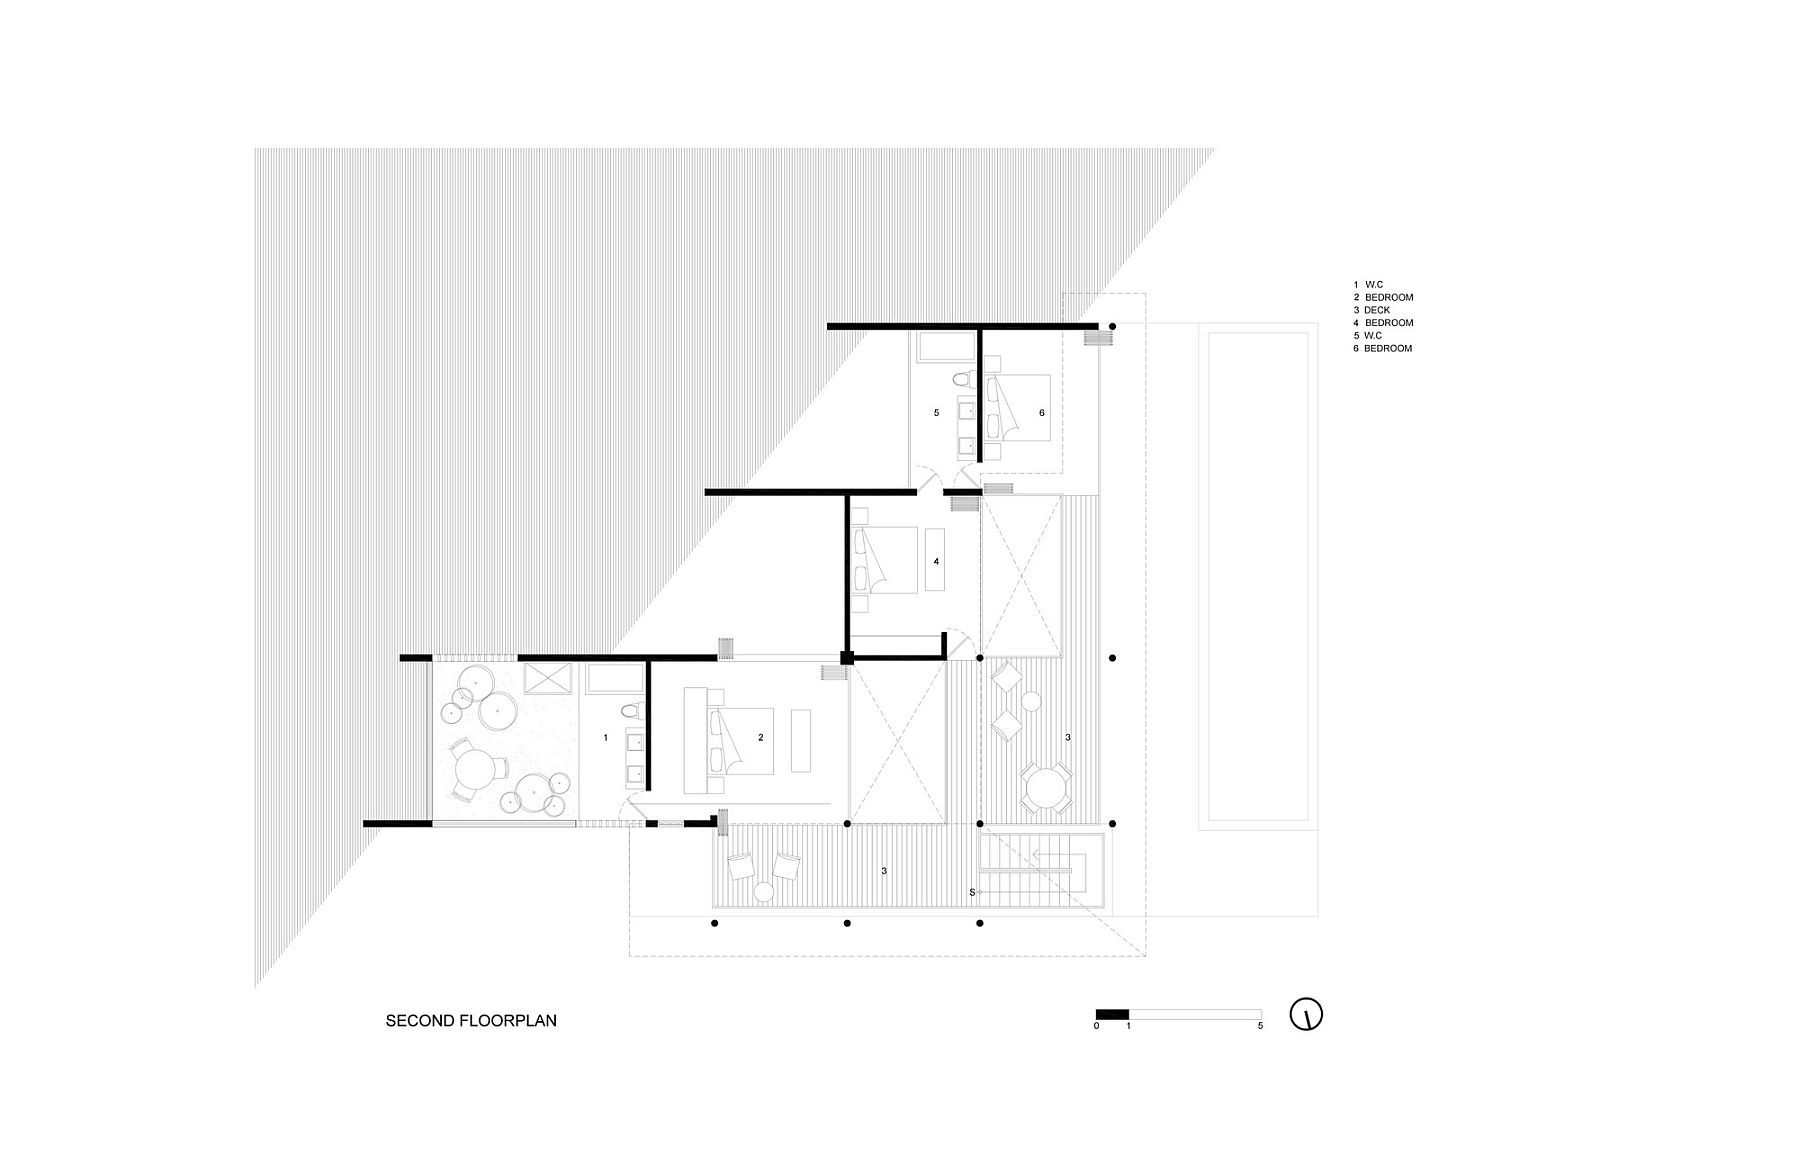 Second level floor plan with bedrooms